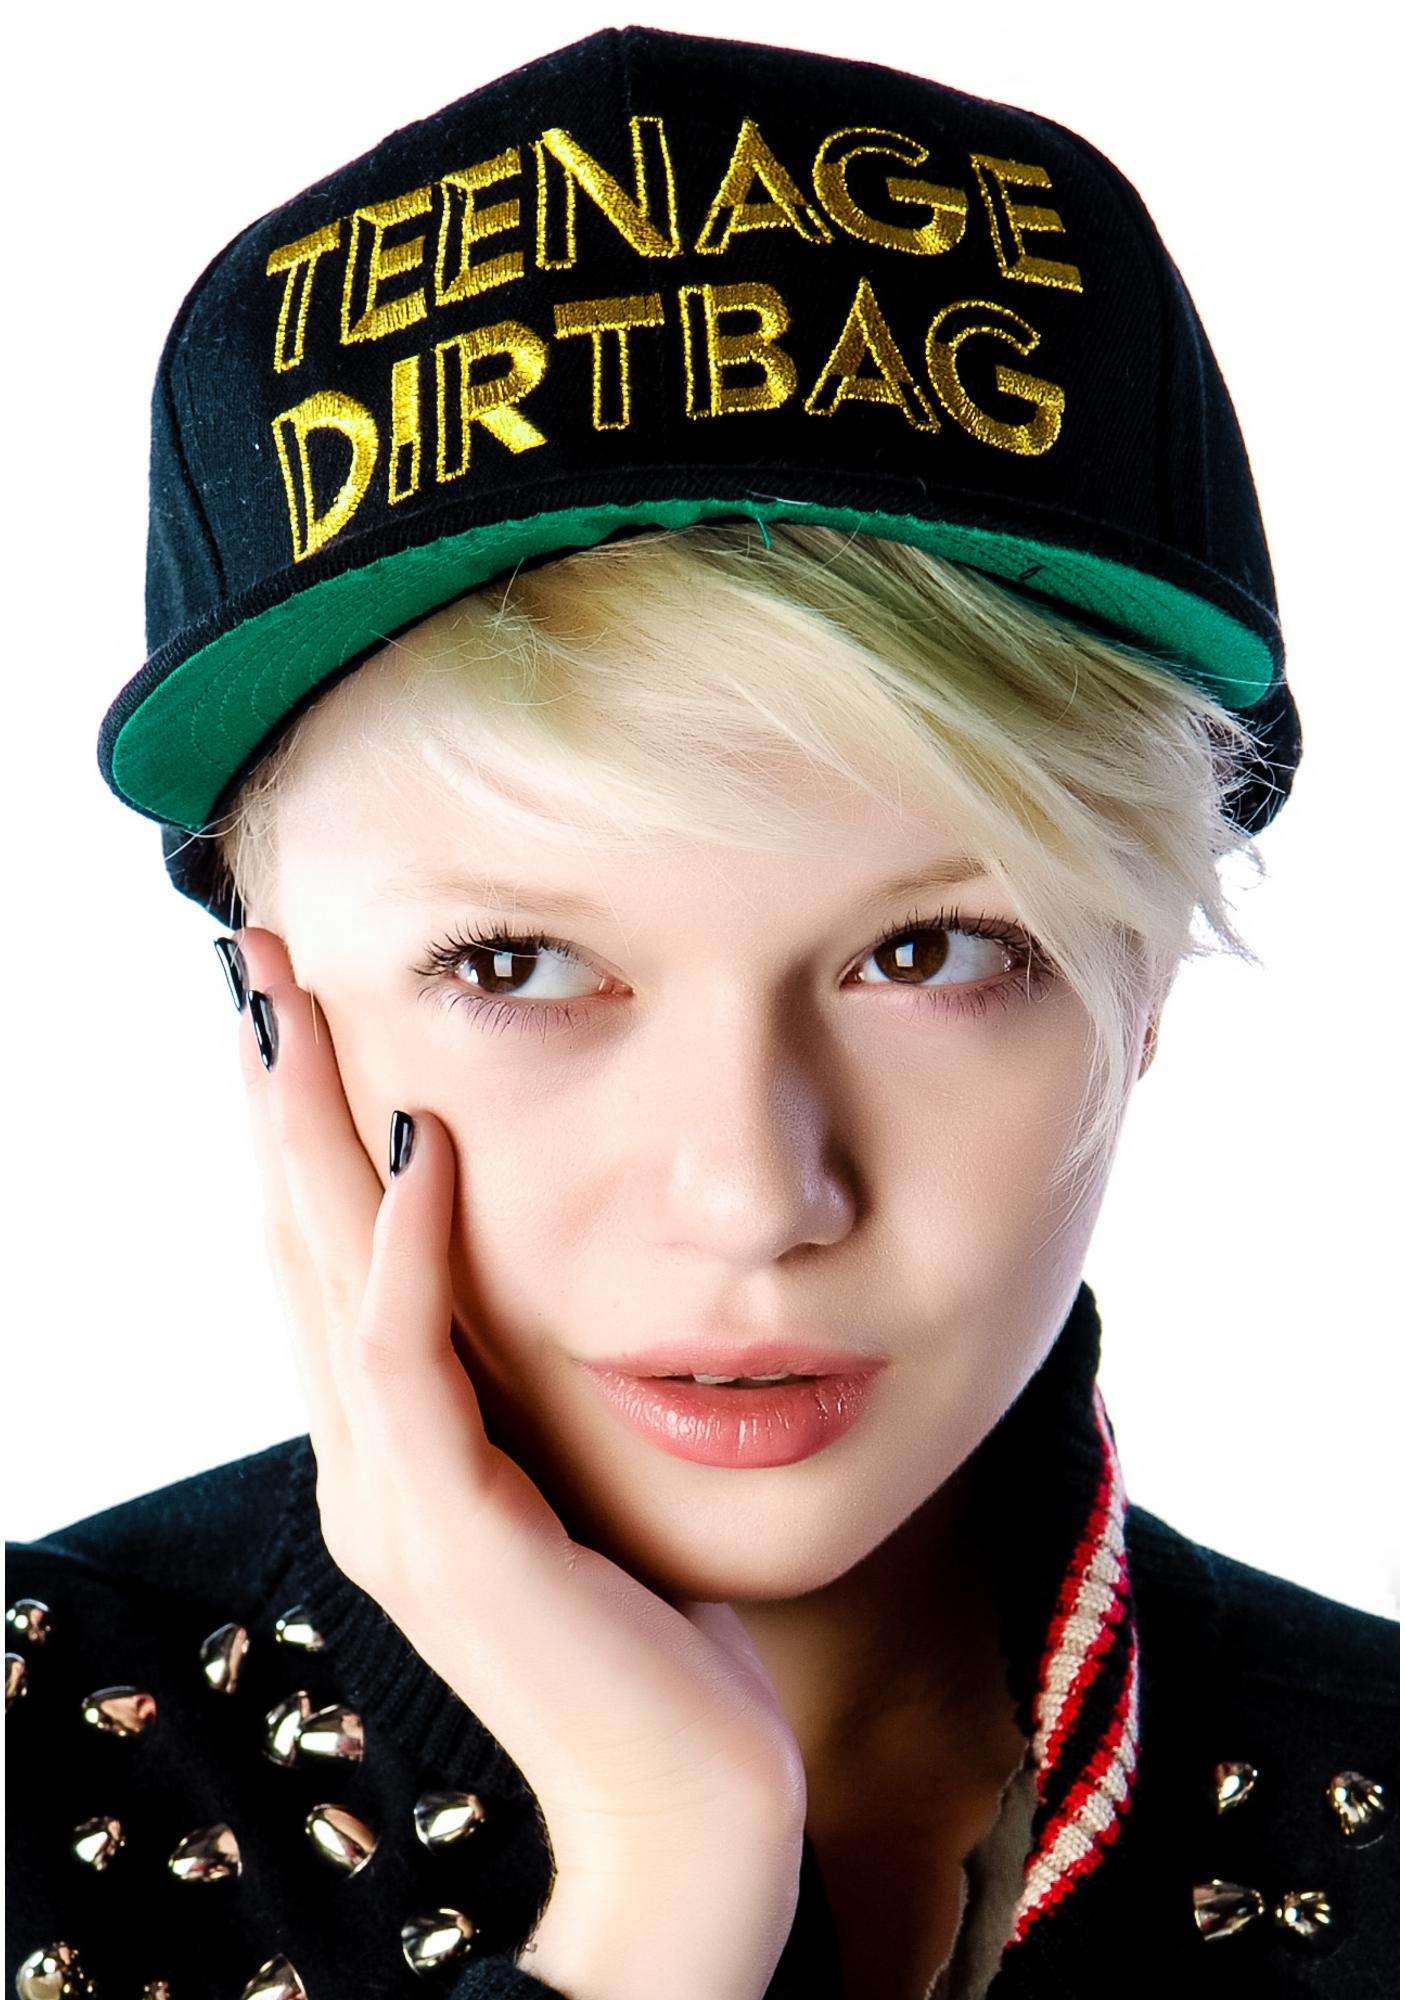 United Couture Teenage Dirtbag Snapback